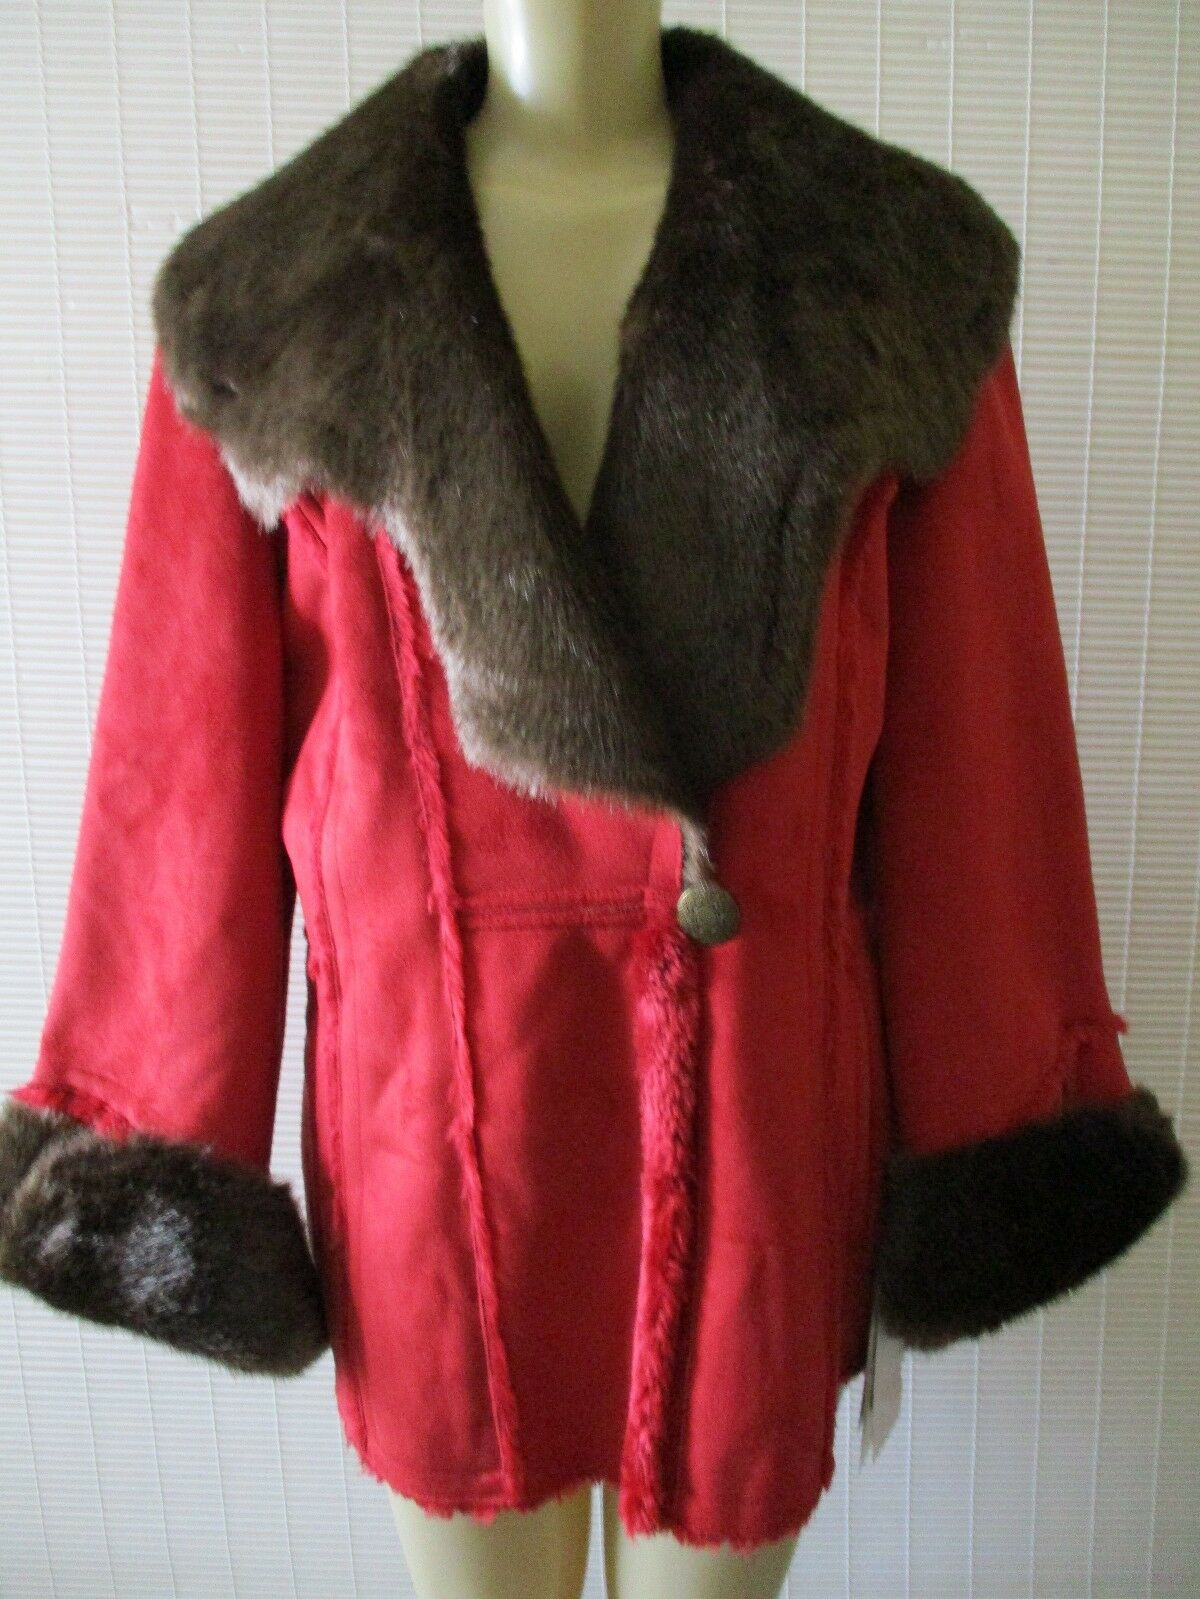 TERRY LEWIS RED LONG SLEEVE FAUX SUEDE COAT WITH SHAWL COLLAR SIZE M - NWT